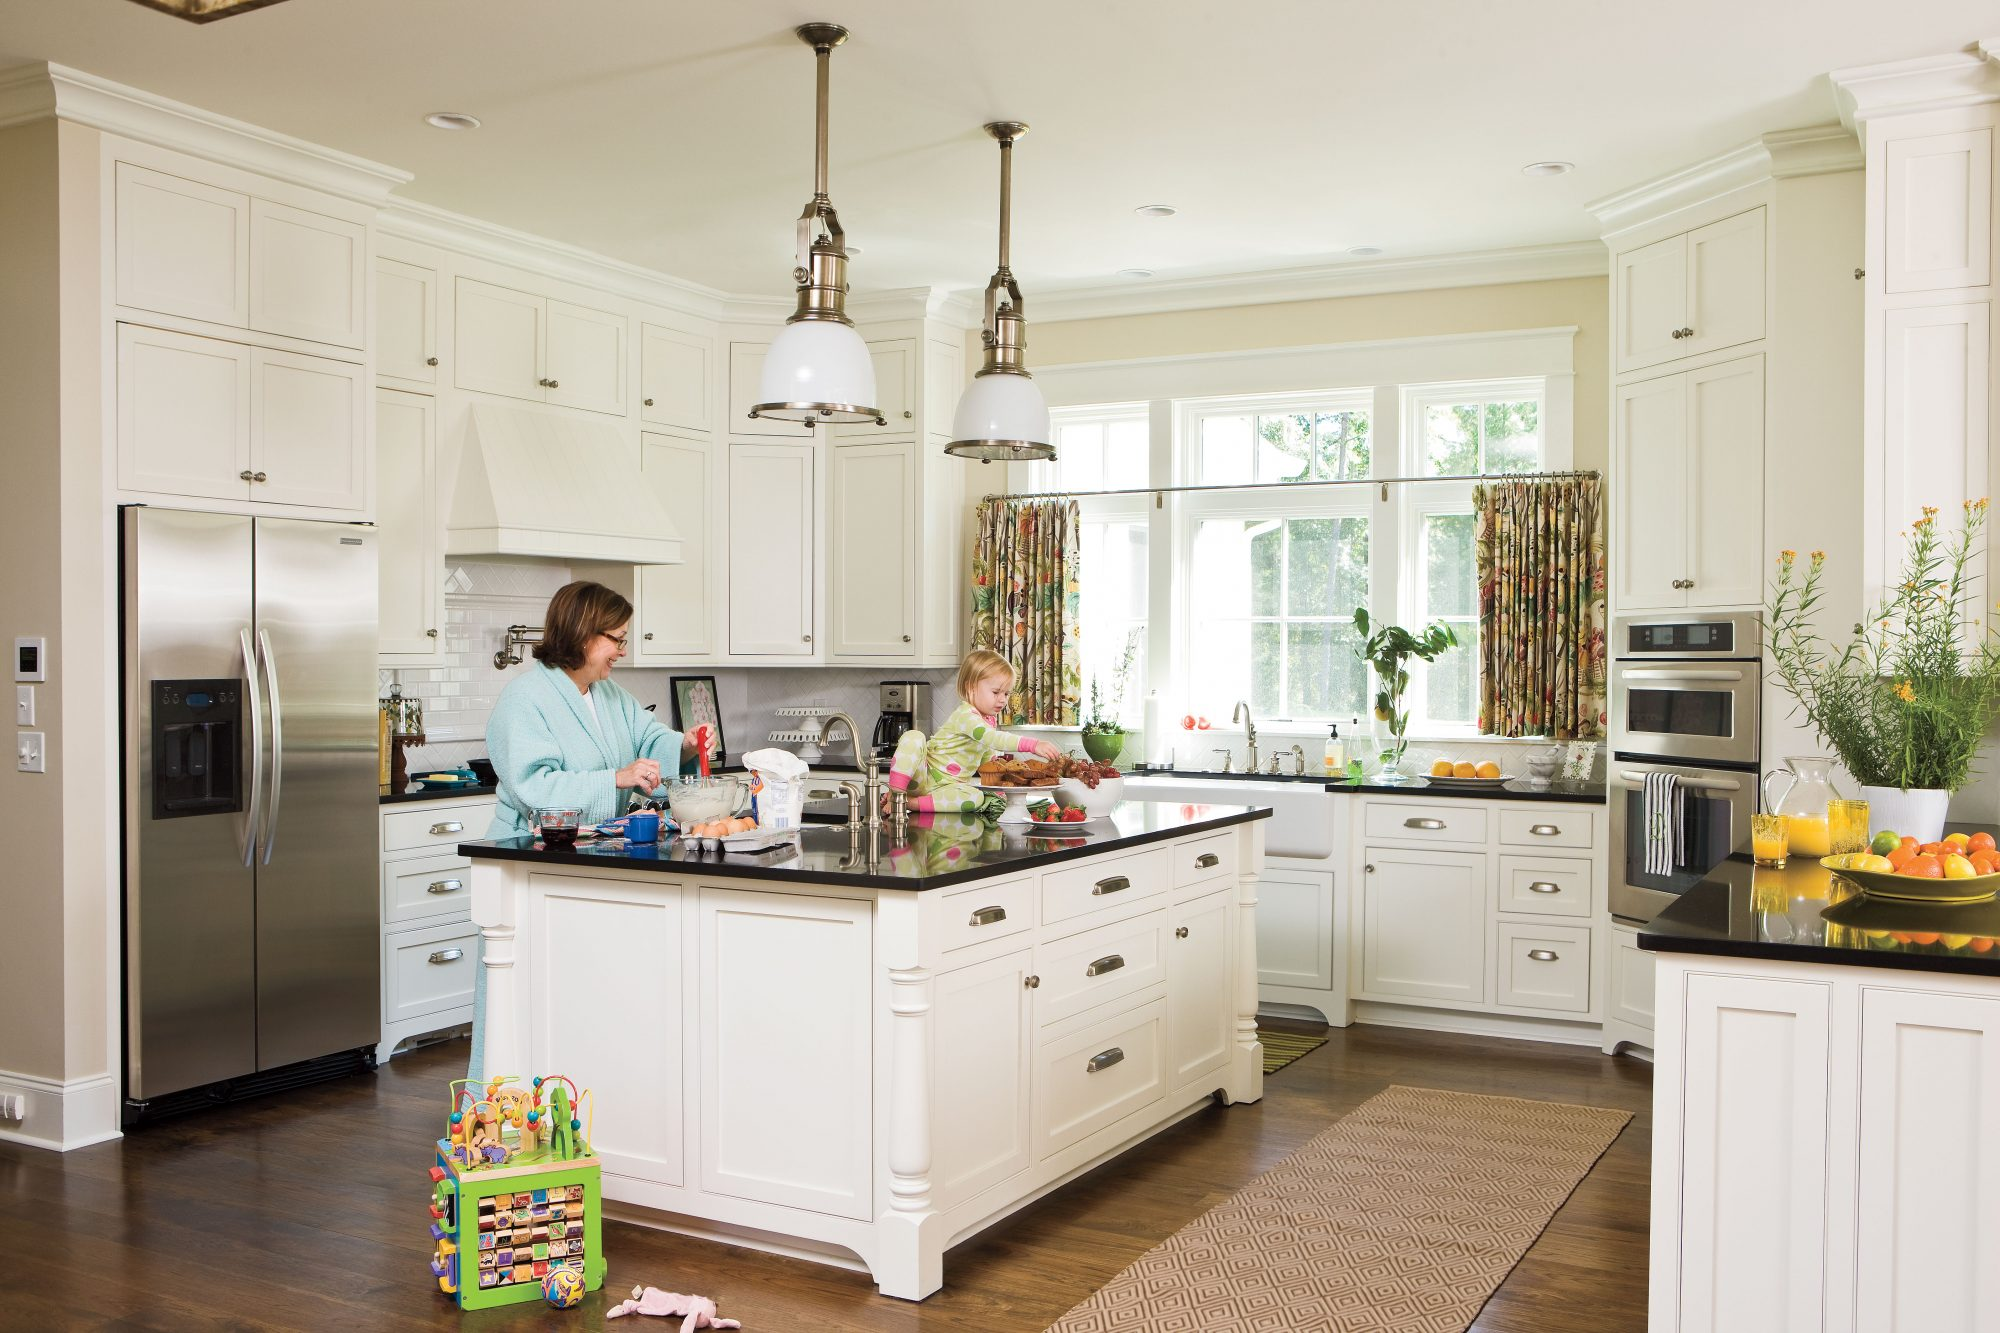 Ideas for Southern Homes: Kitchen Cabinet Details